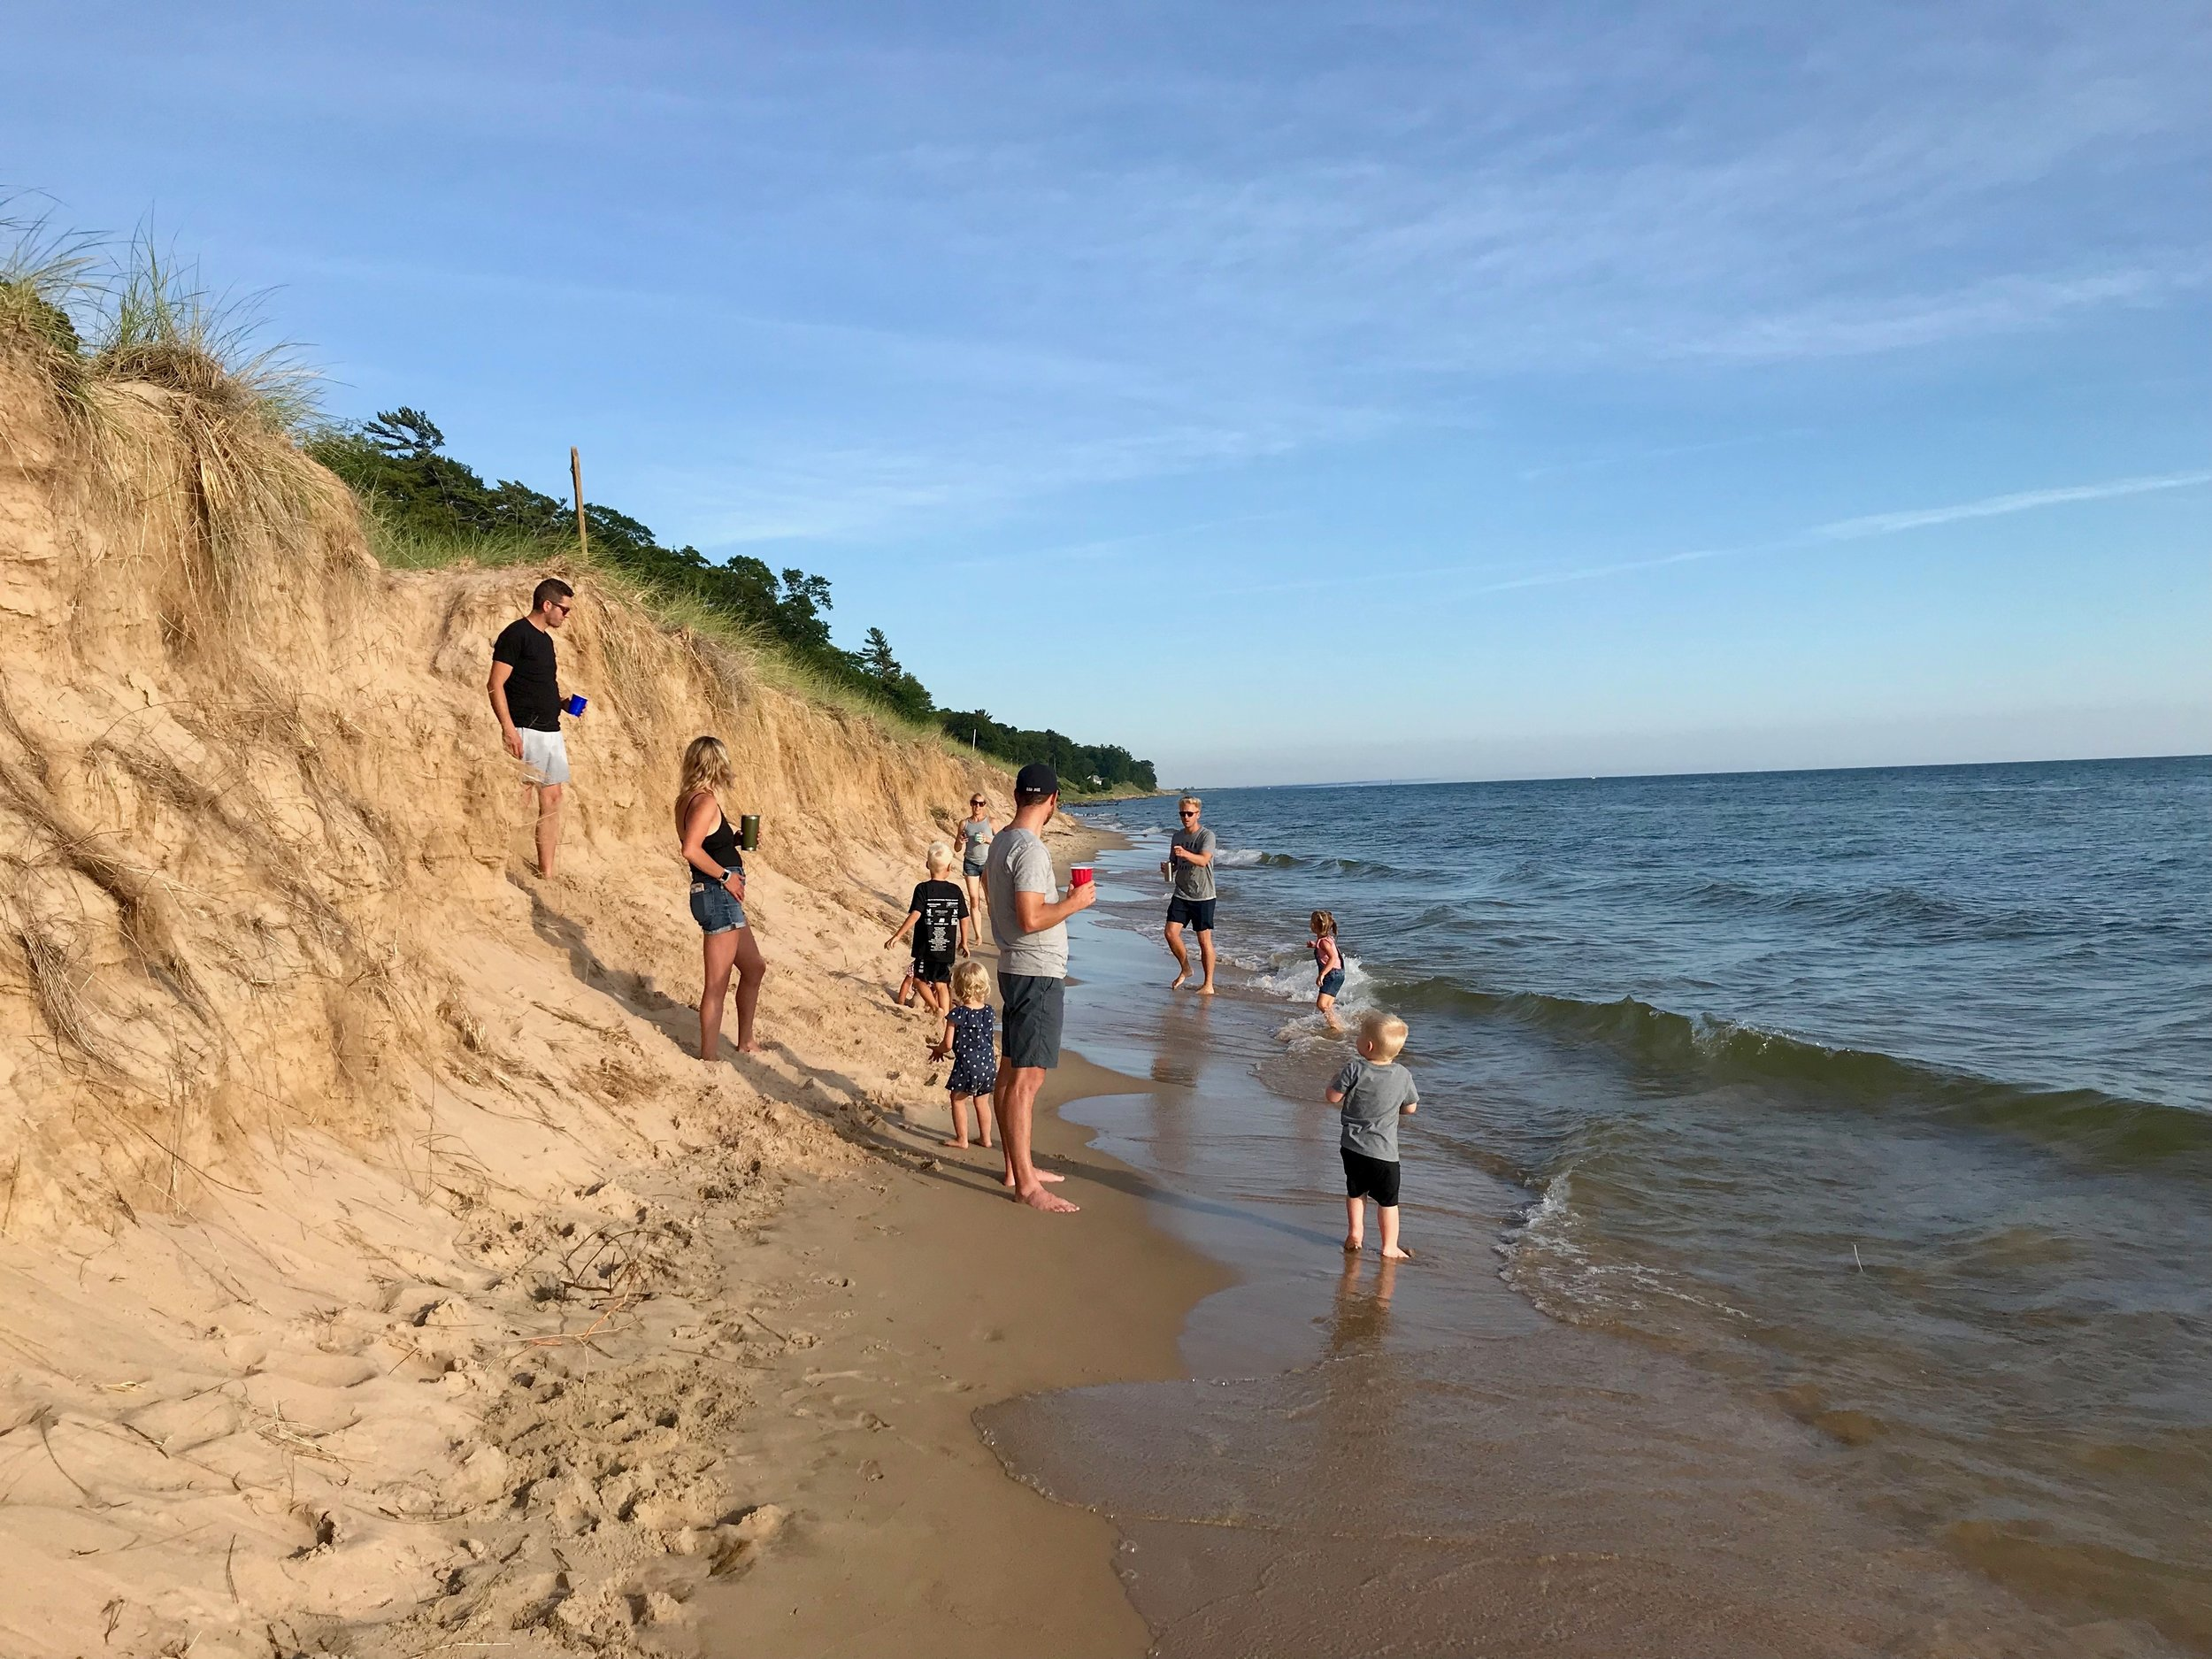 lake michigan beach walk.jpeg